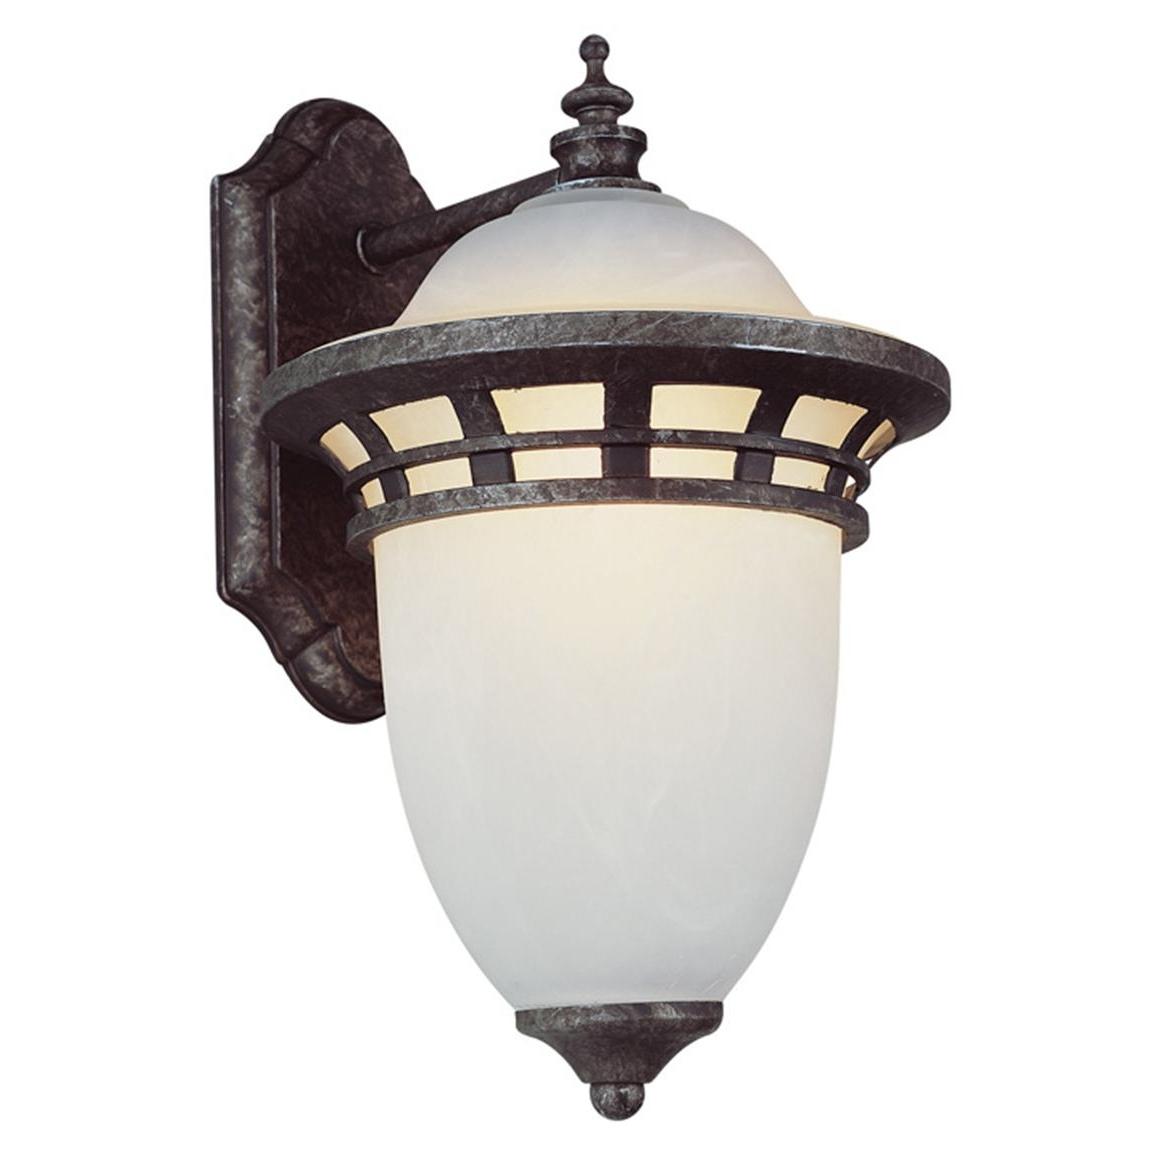 Well Known Outdoor Wall Mounted Globe Lights Intended For Trans Globe Lighting 1 – Light Outdoor Antique Wall Lantern –  (View 18 of 20)